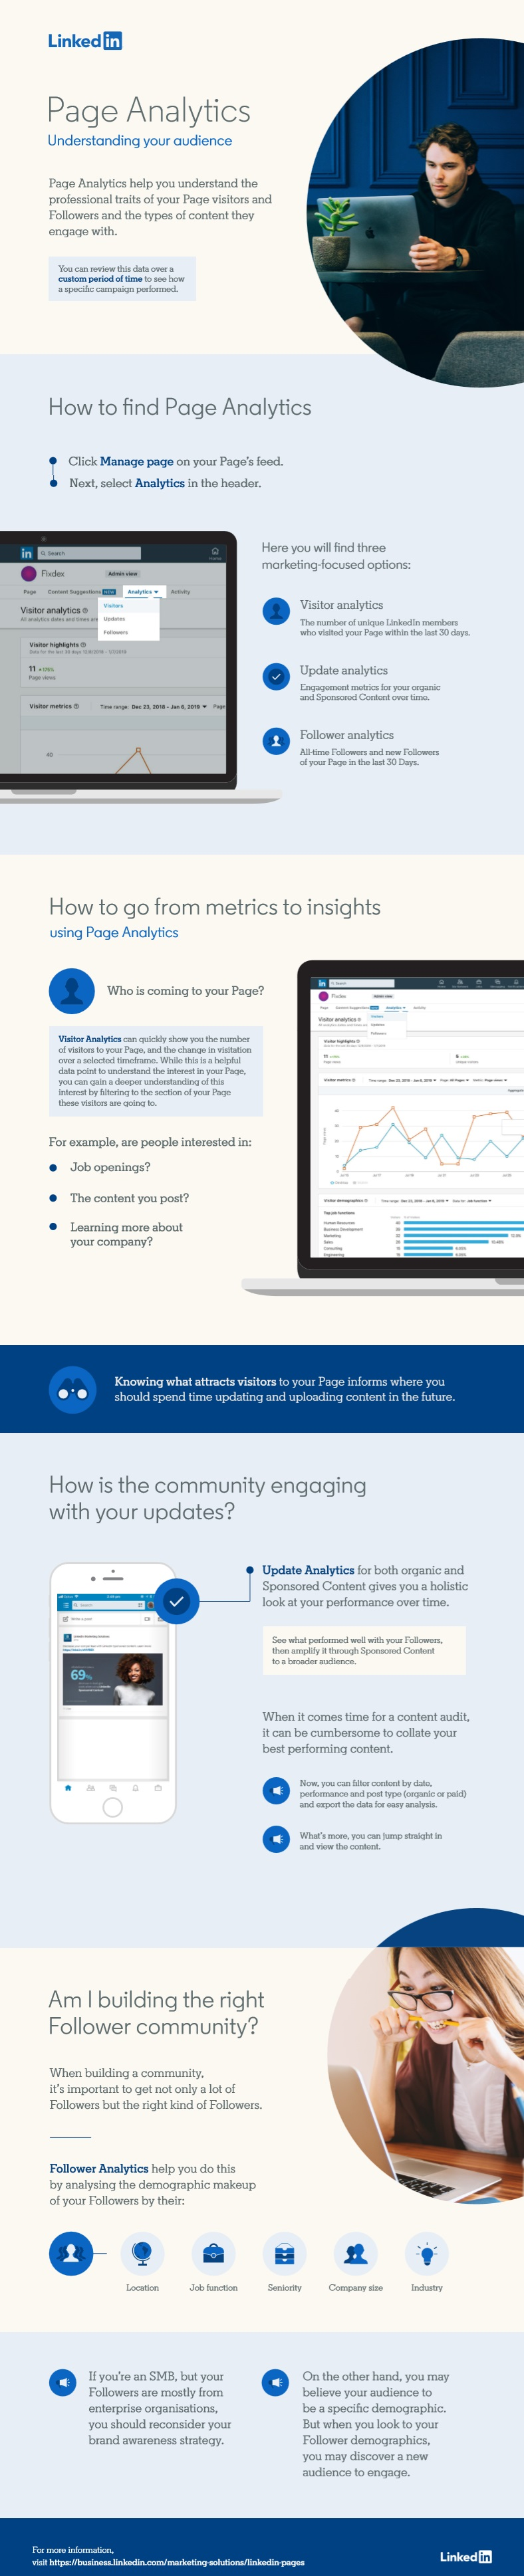 Infographic looks at how to use LinkedIn's company page analytics